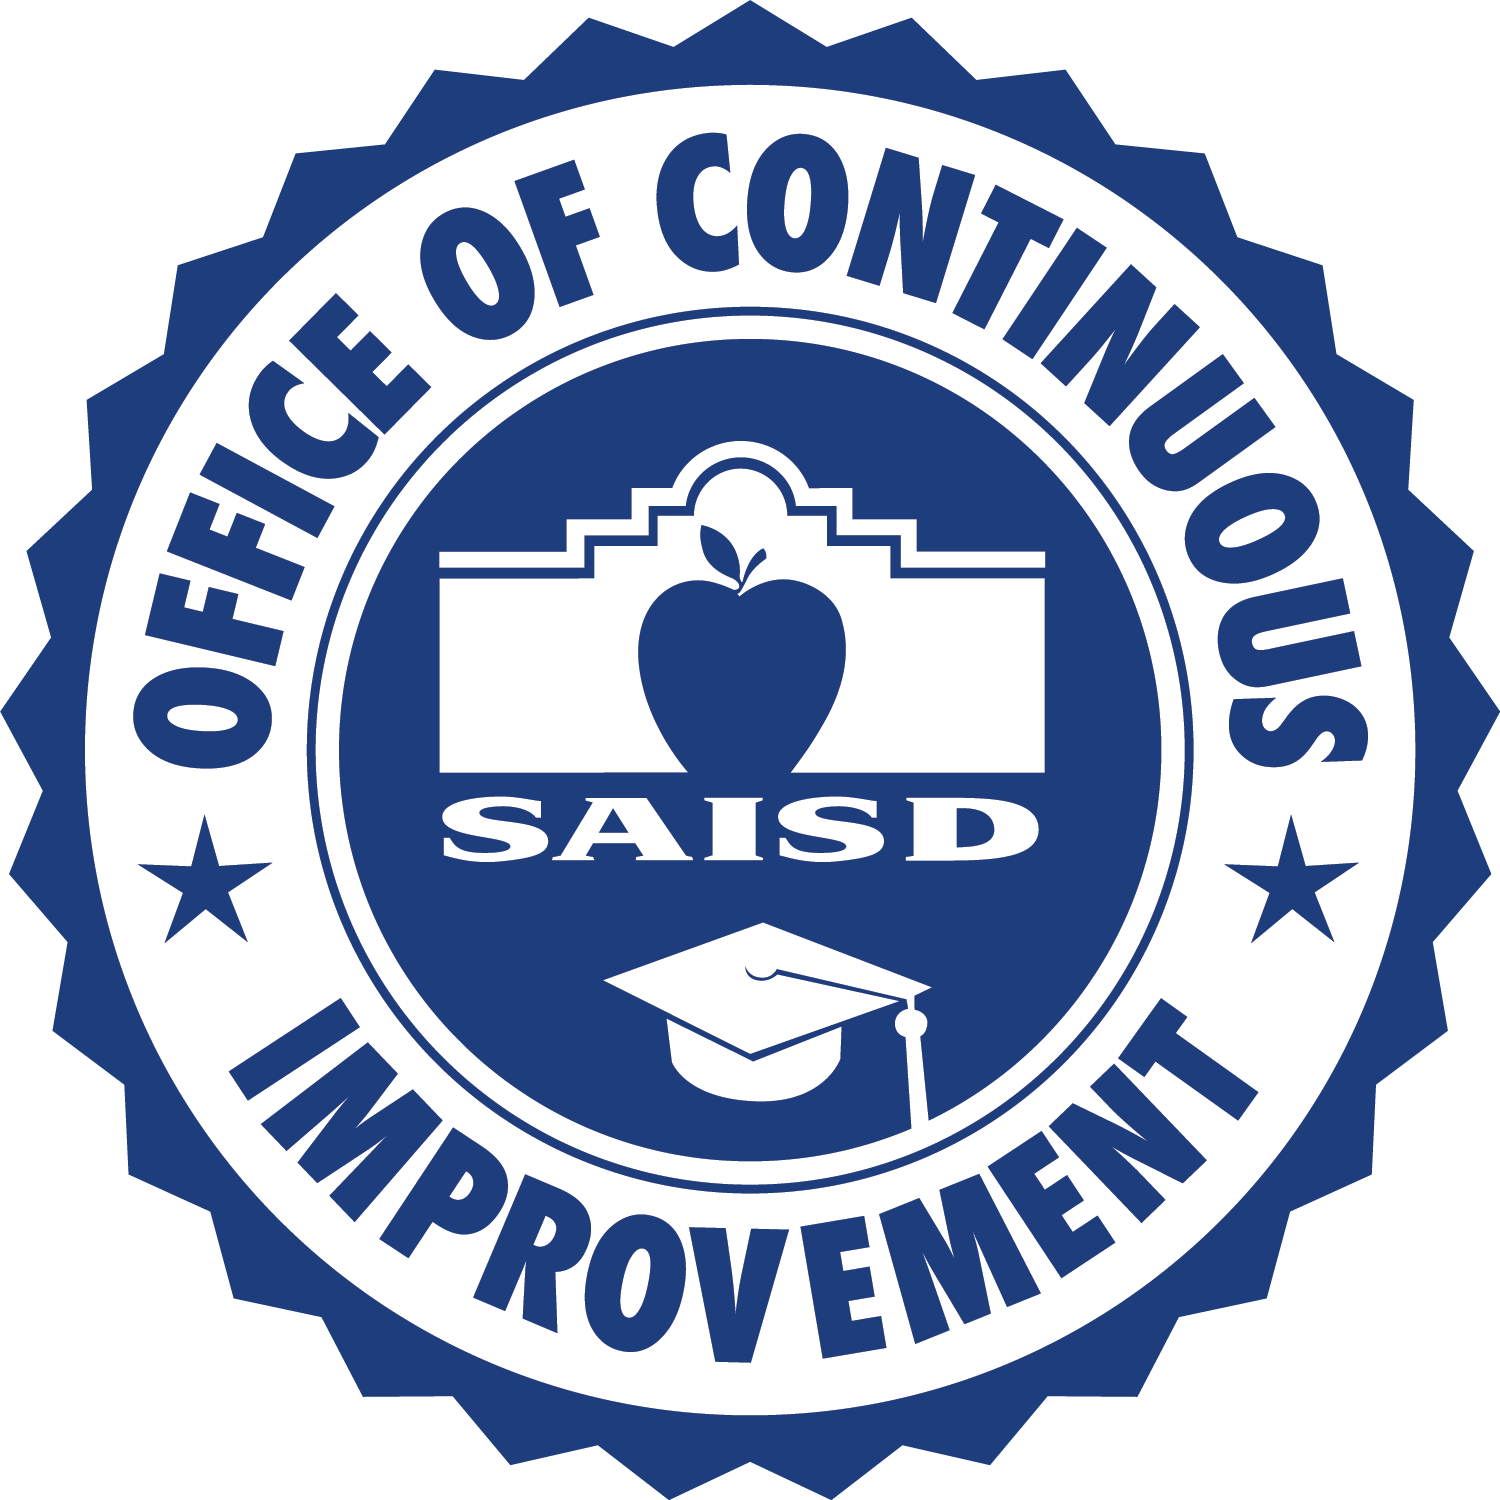 Office of Continuous Improvement logo